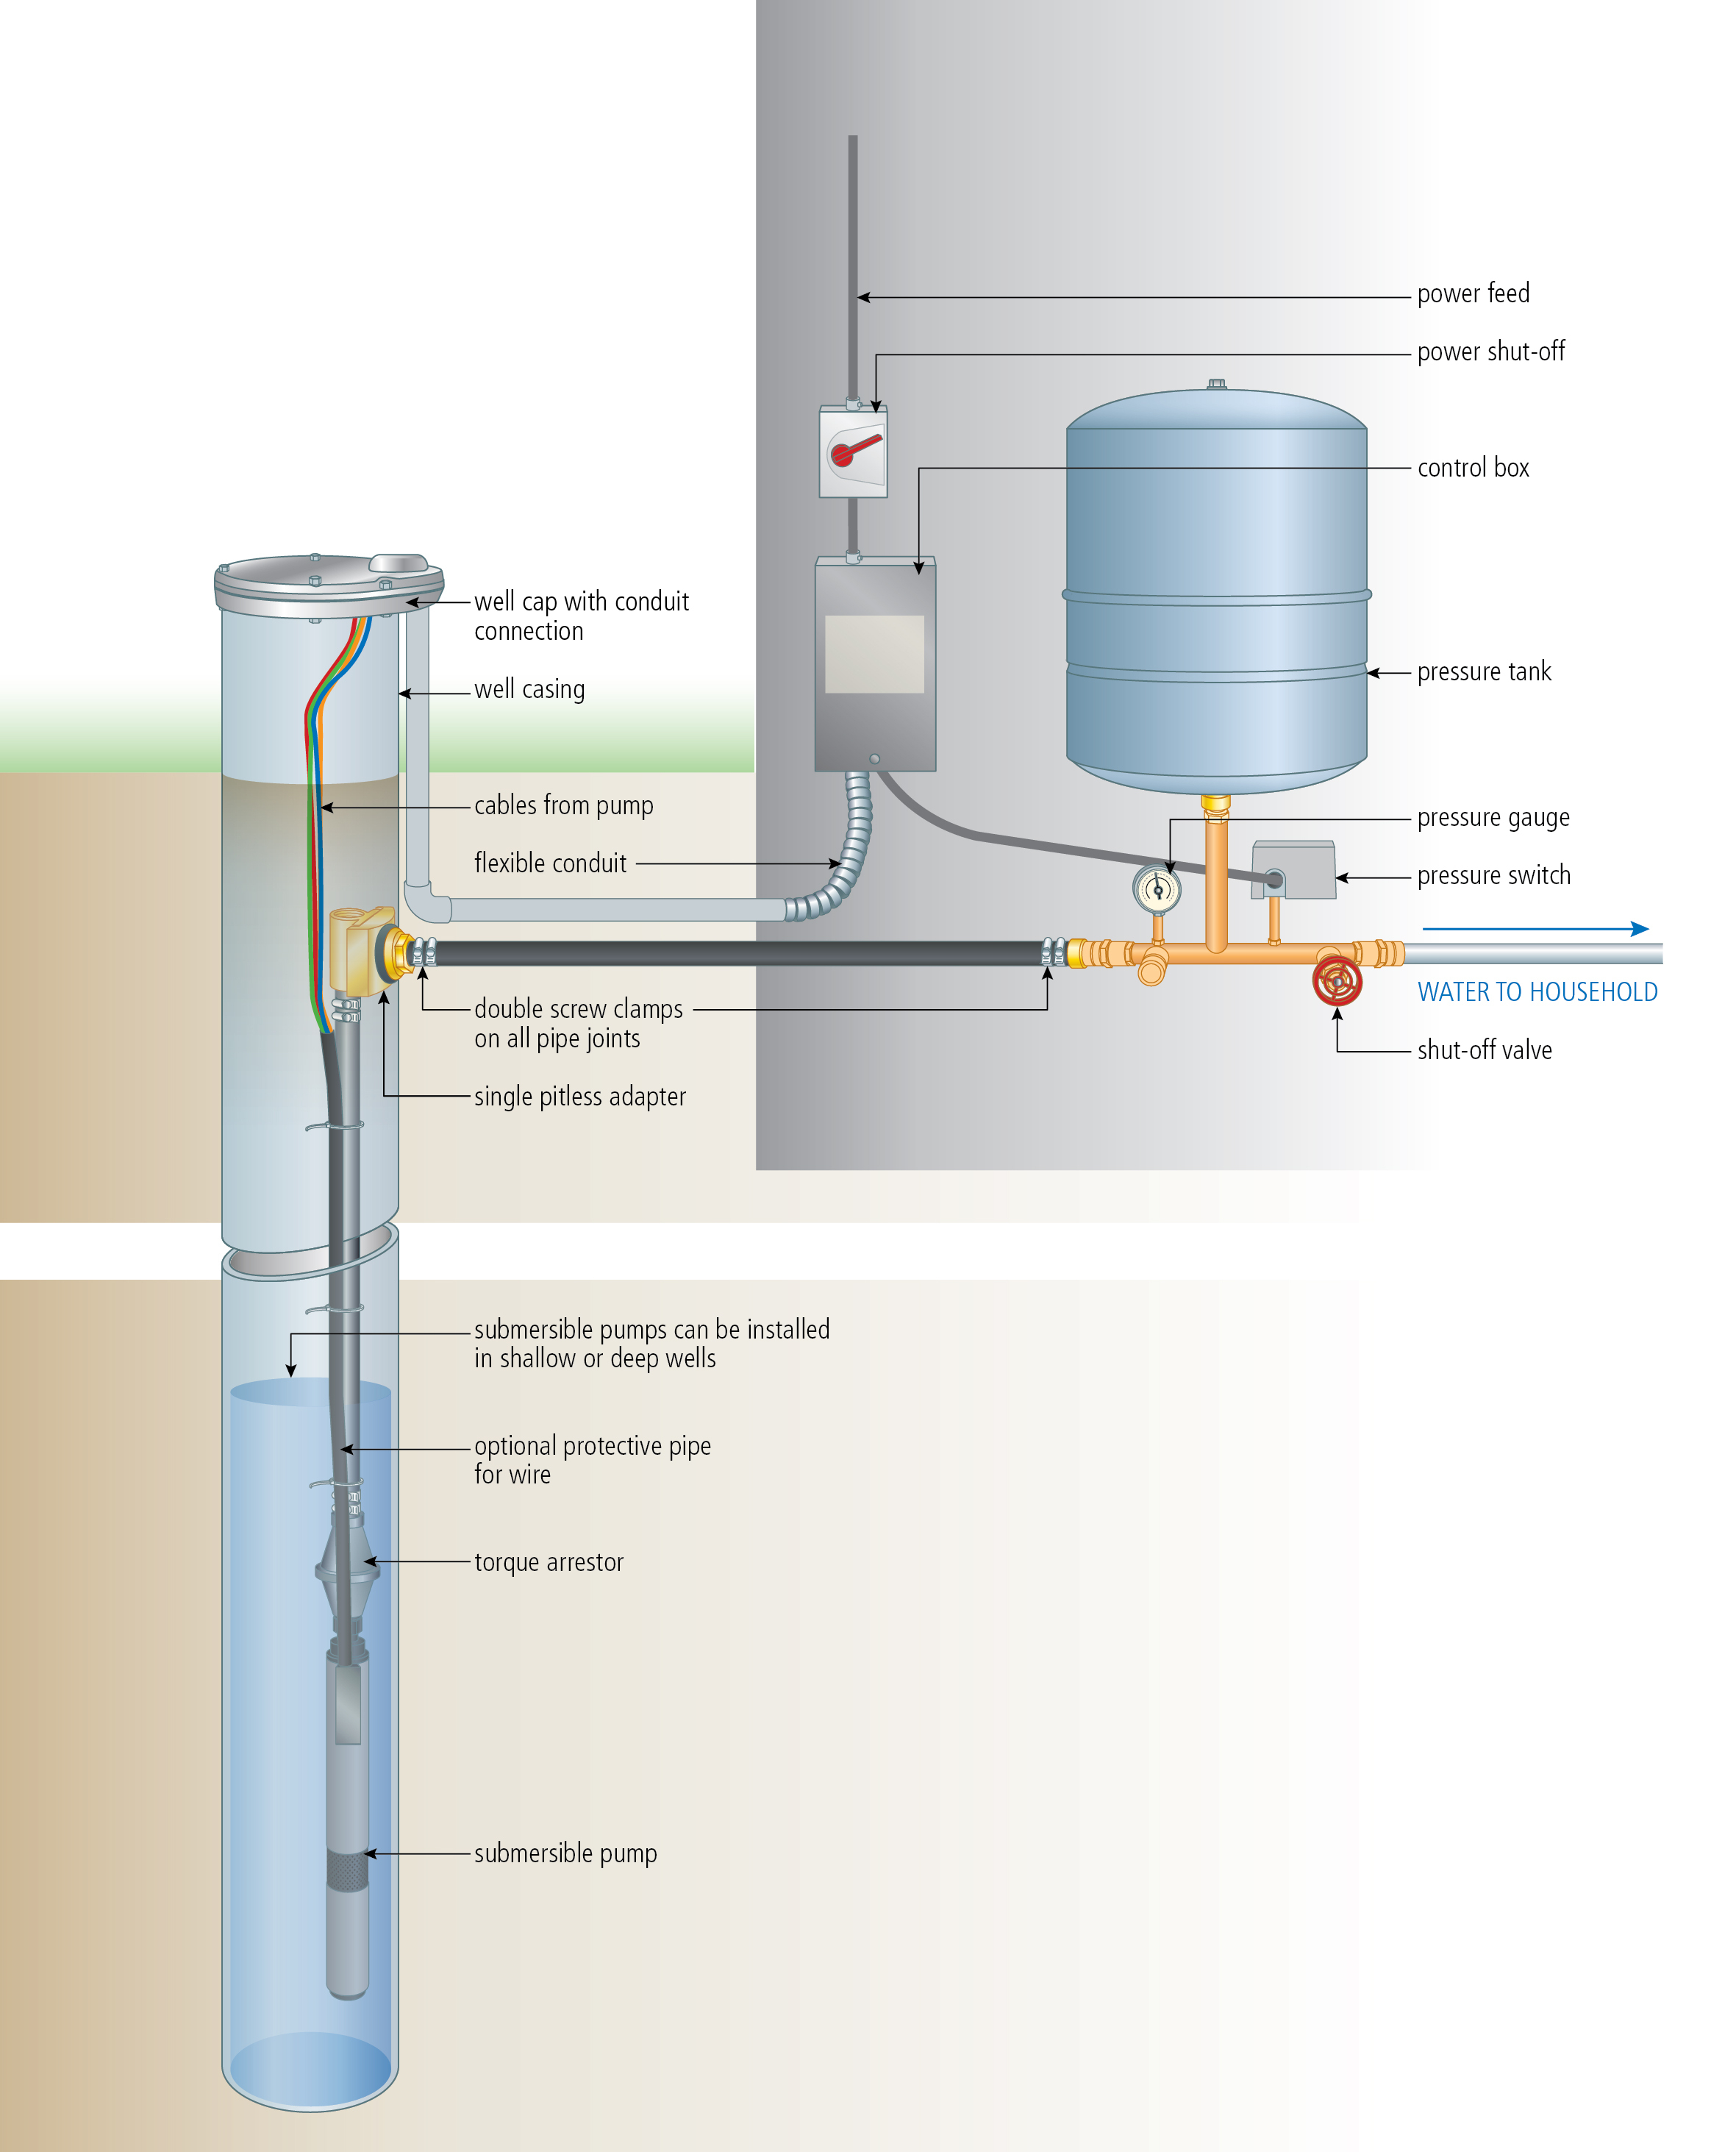 Install A Submersible Pump: 6 Lessons For Doing It Right - Well Pump Wiring Diagram